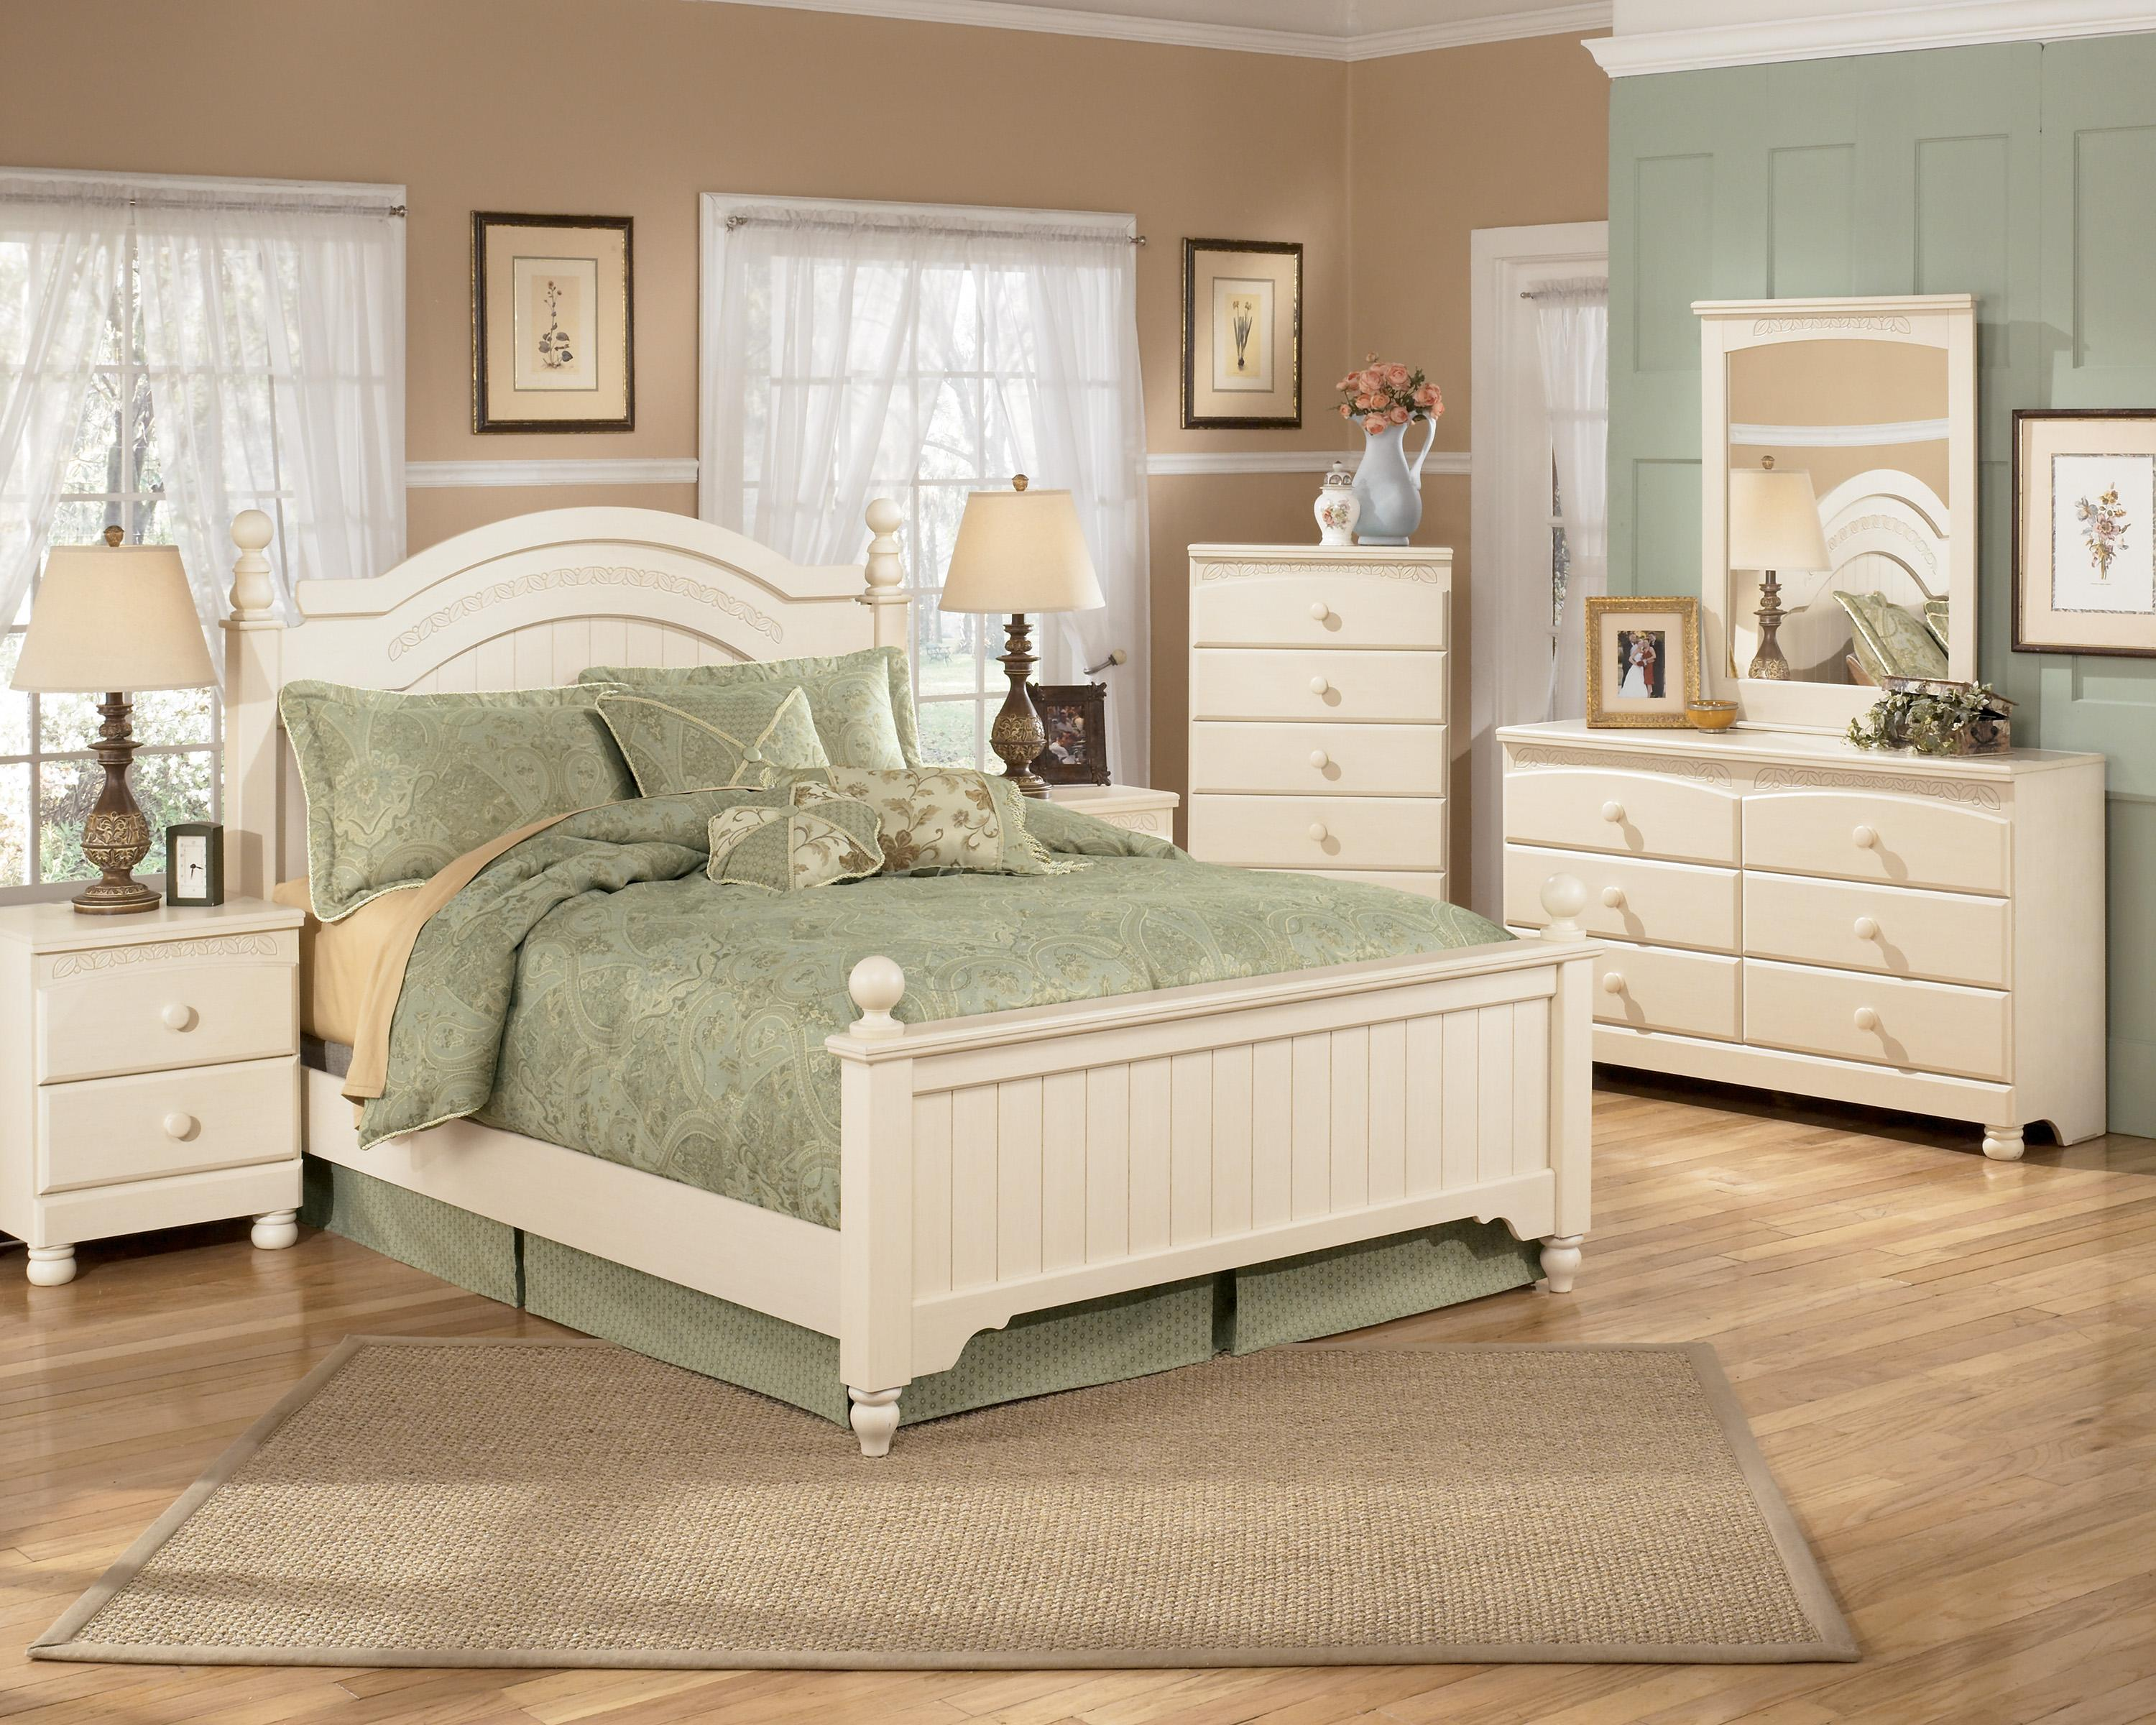 cottage retreat bedroom set signature design by cottage retreat size 15027